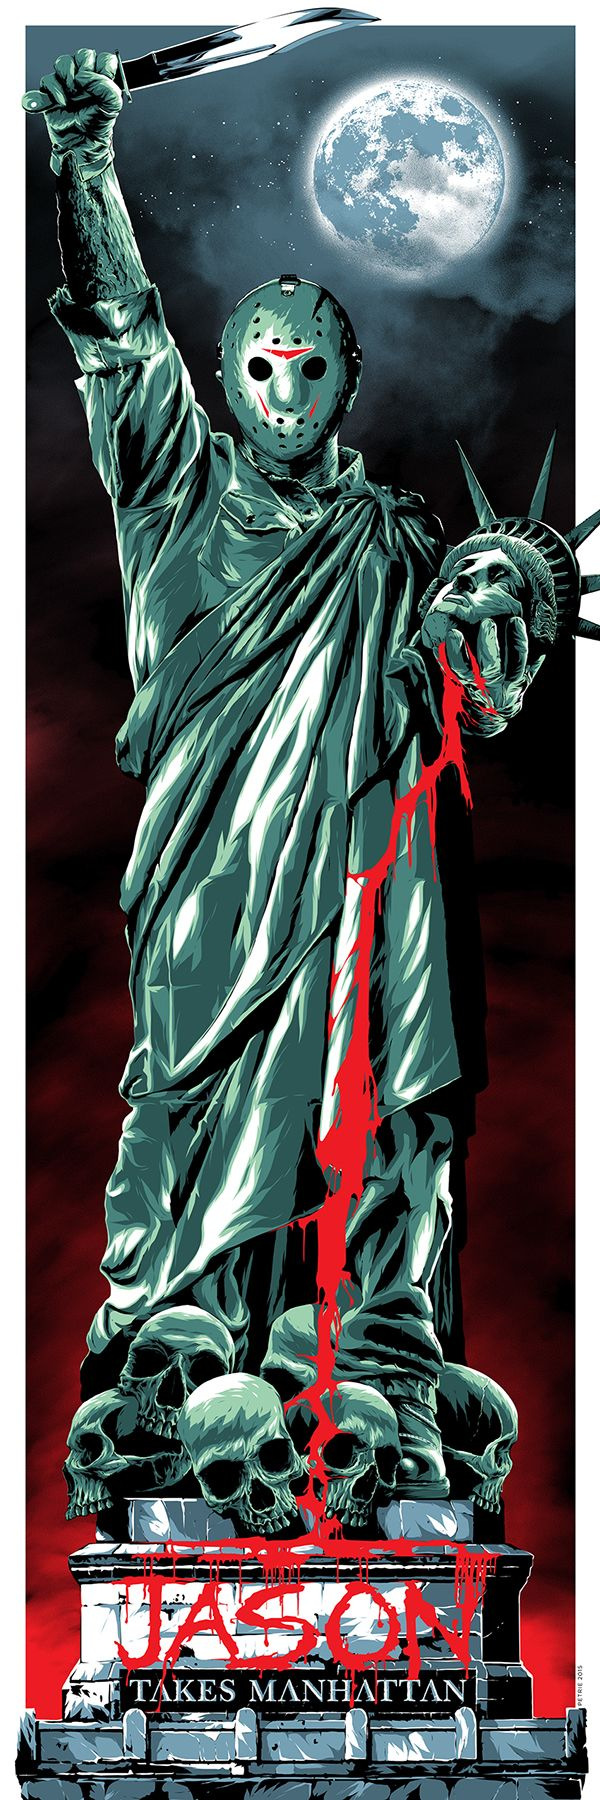 Friday the 13th Part 8: Jason Takes Manhattan - movie poster - Anthony Petrie